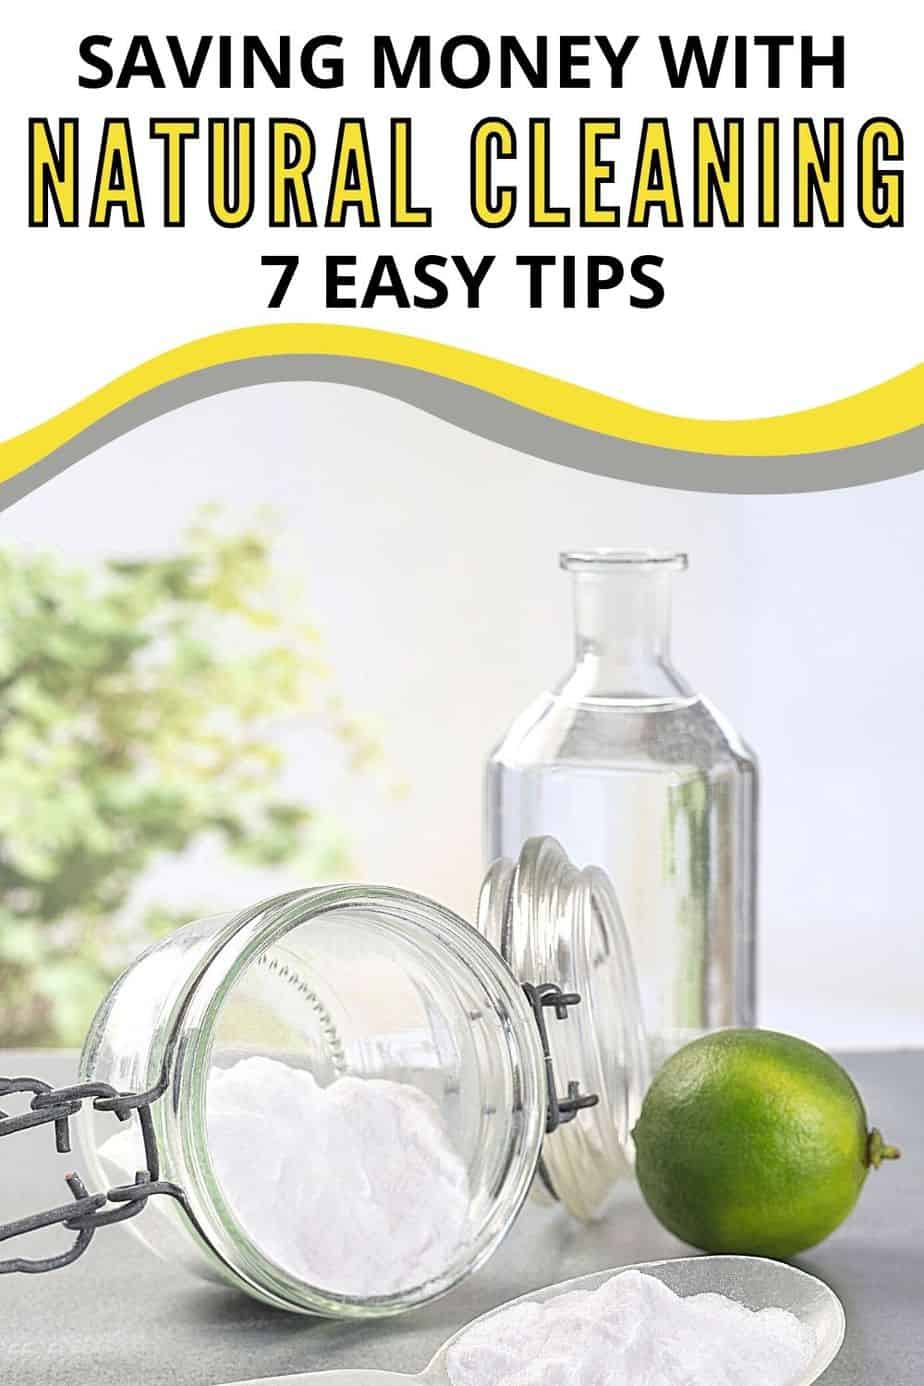 Saving Money with Natural Cleaning - 7 Easy Tips